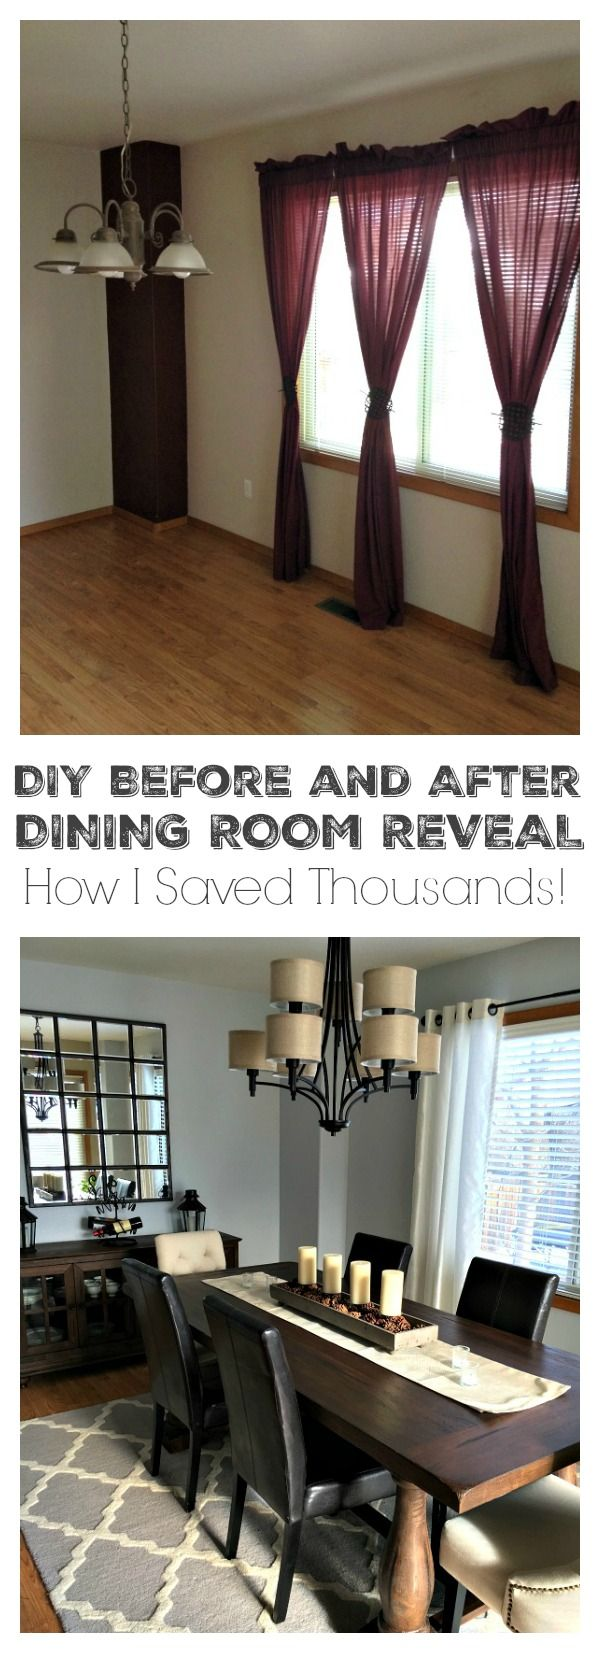 Best images about diy home decor ideas on pinterest